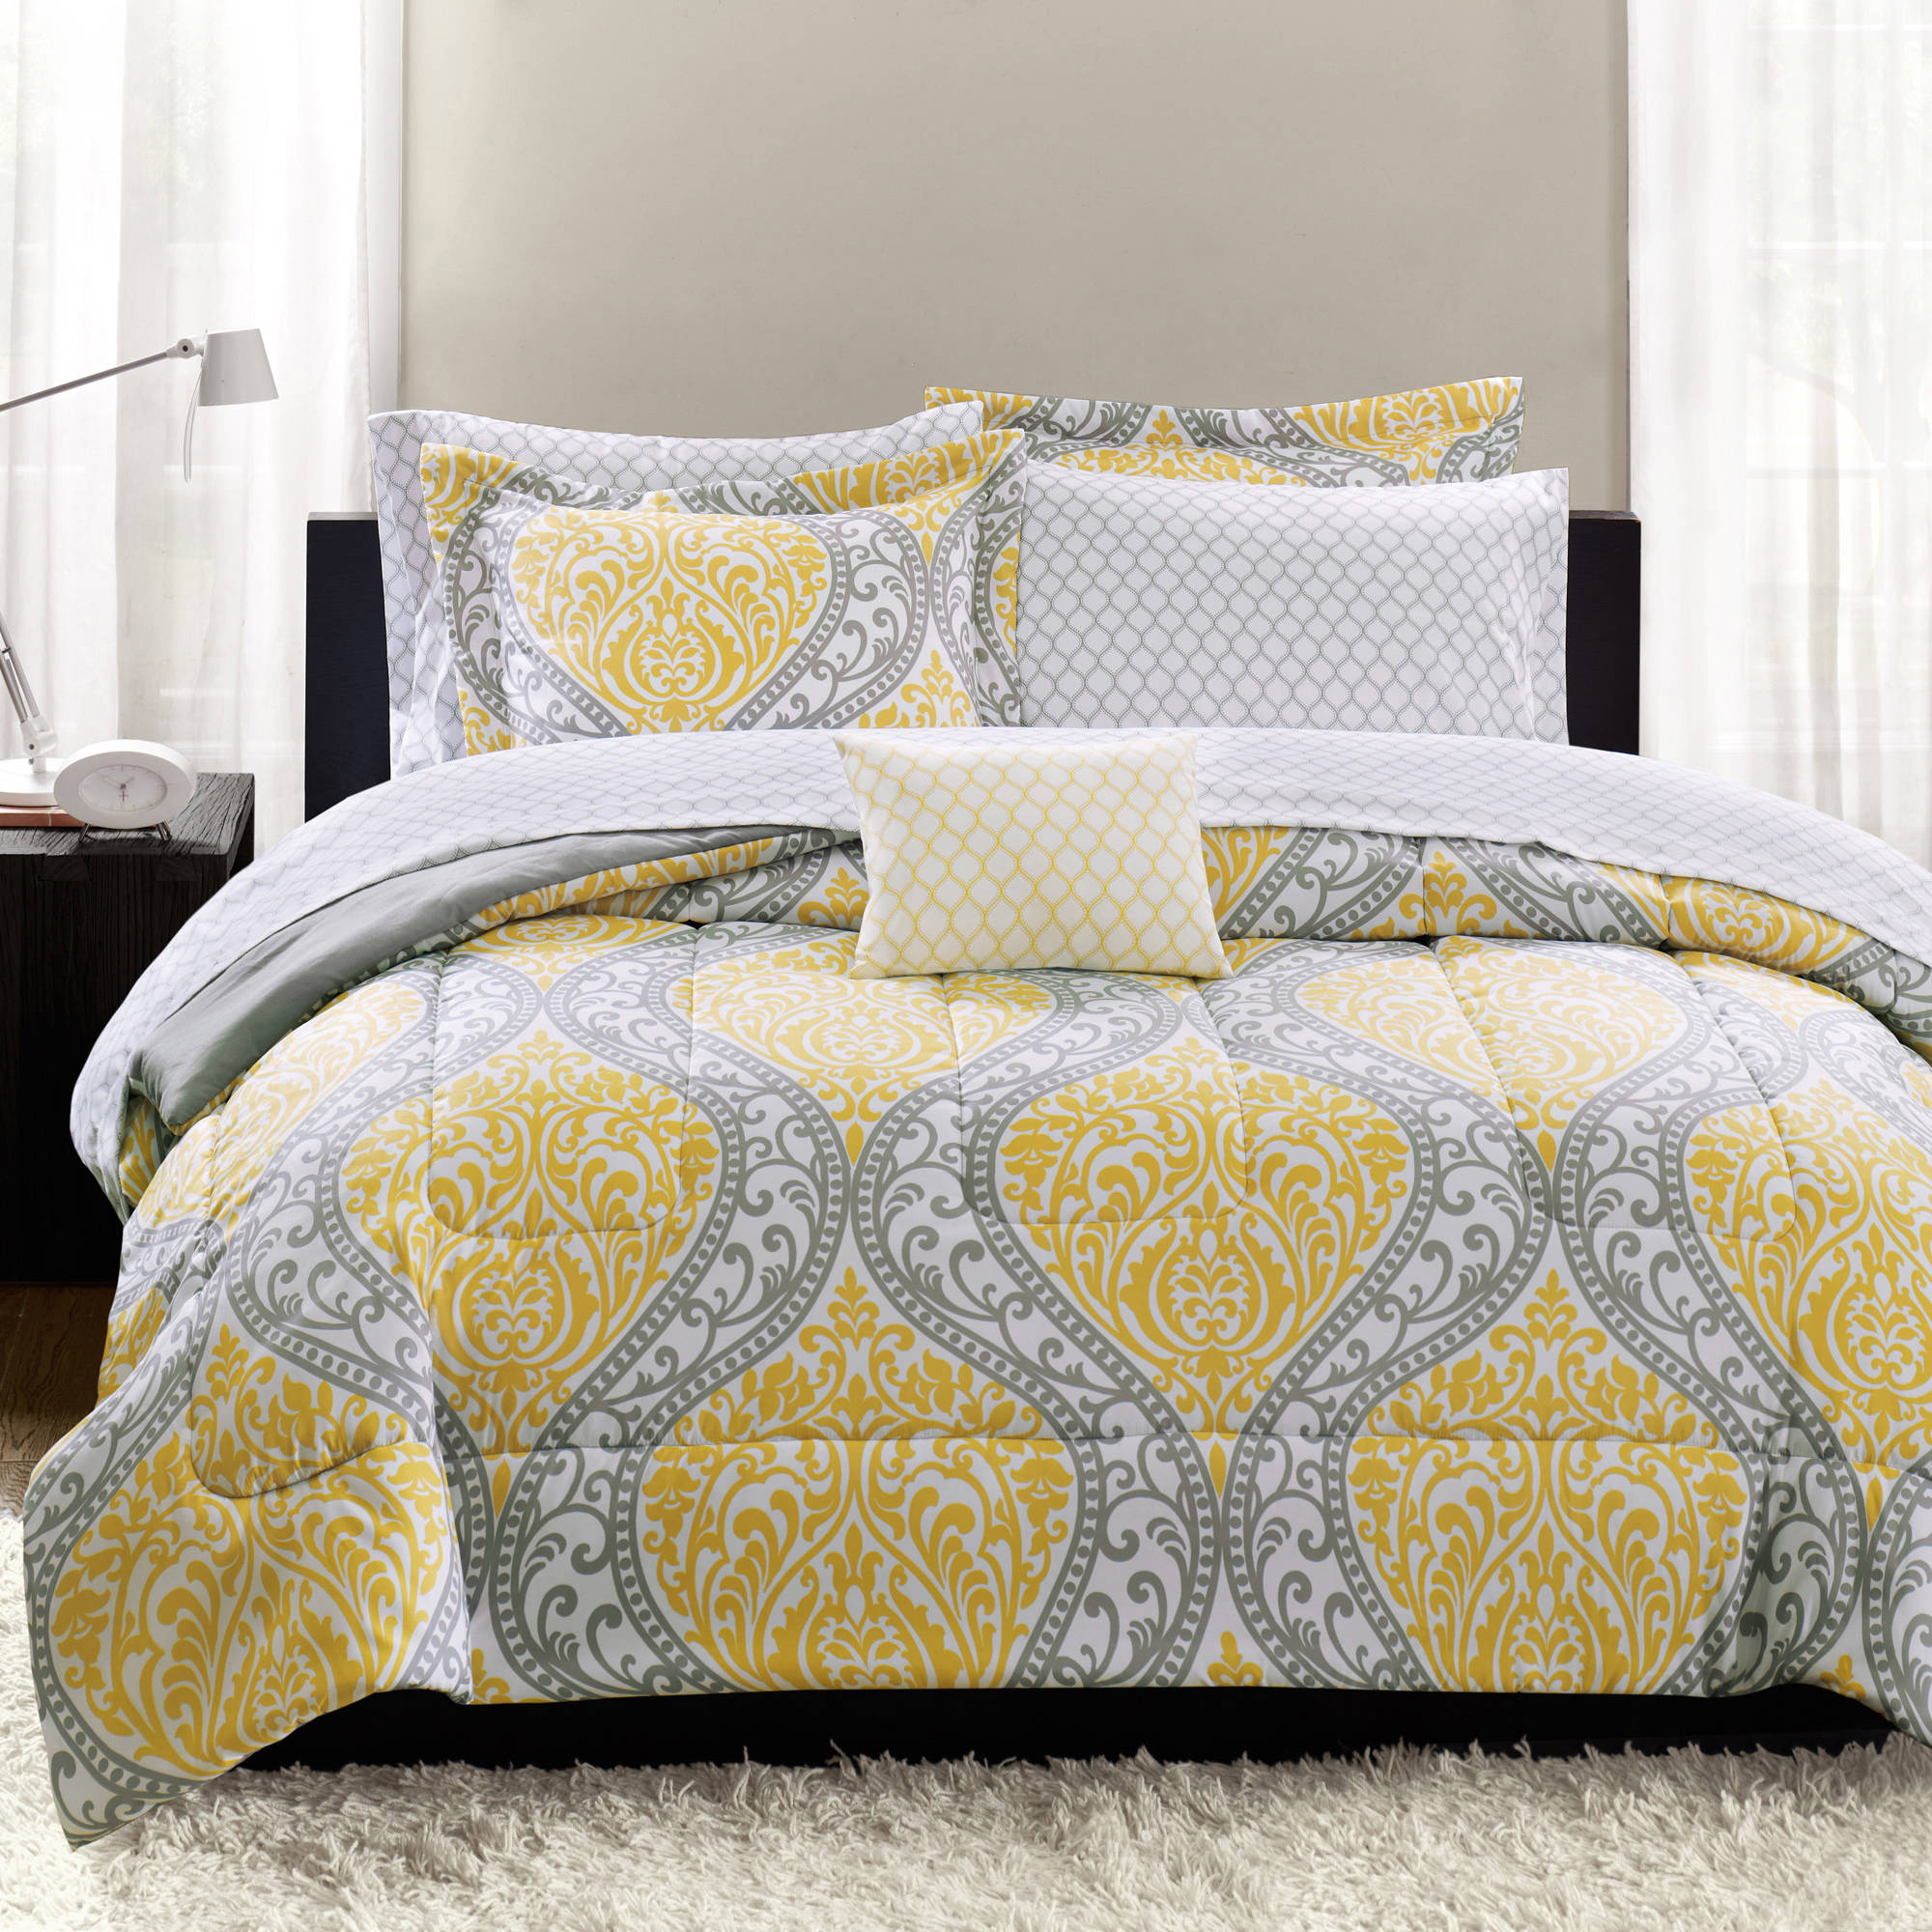 mainstays yellow damask coordinated bedding set bed in a bag rh walmart com